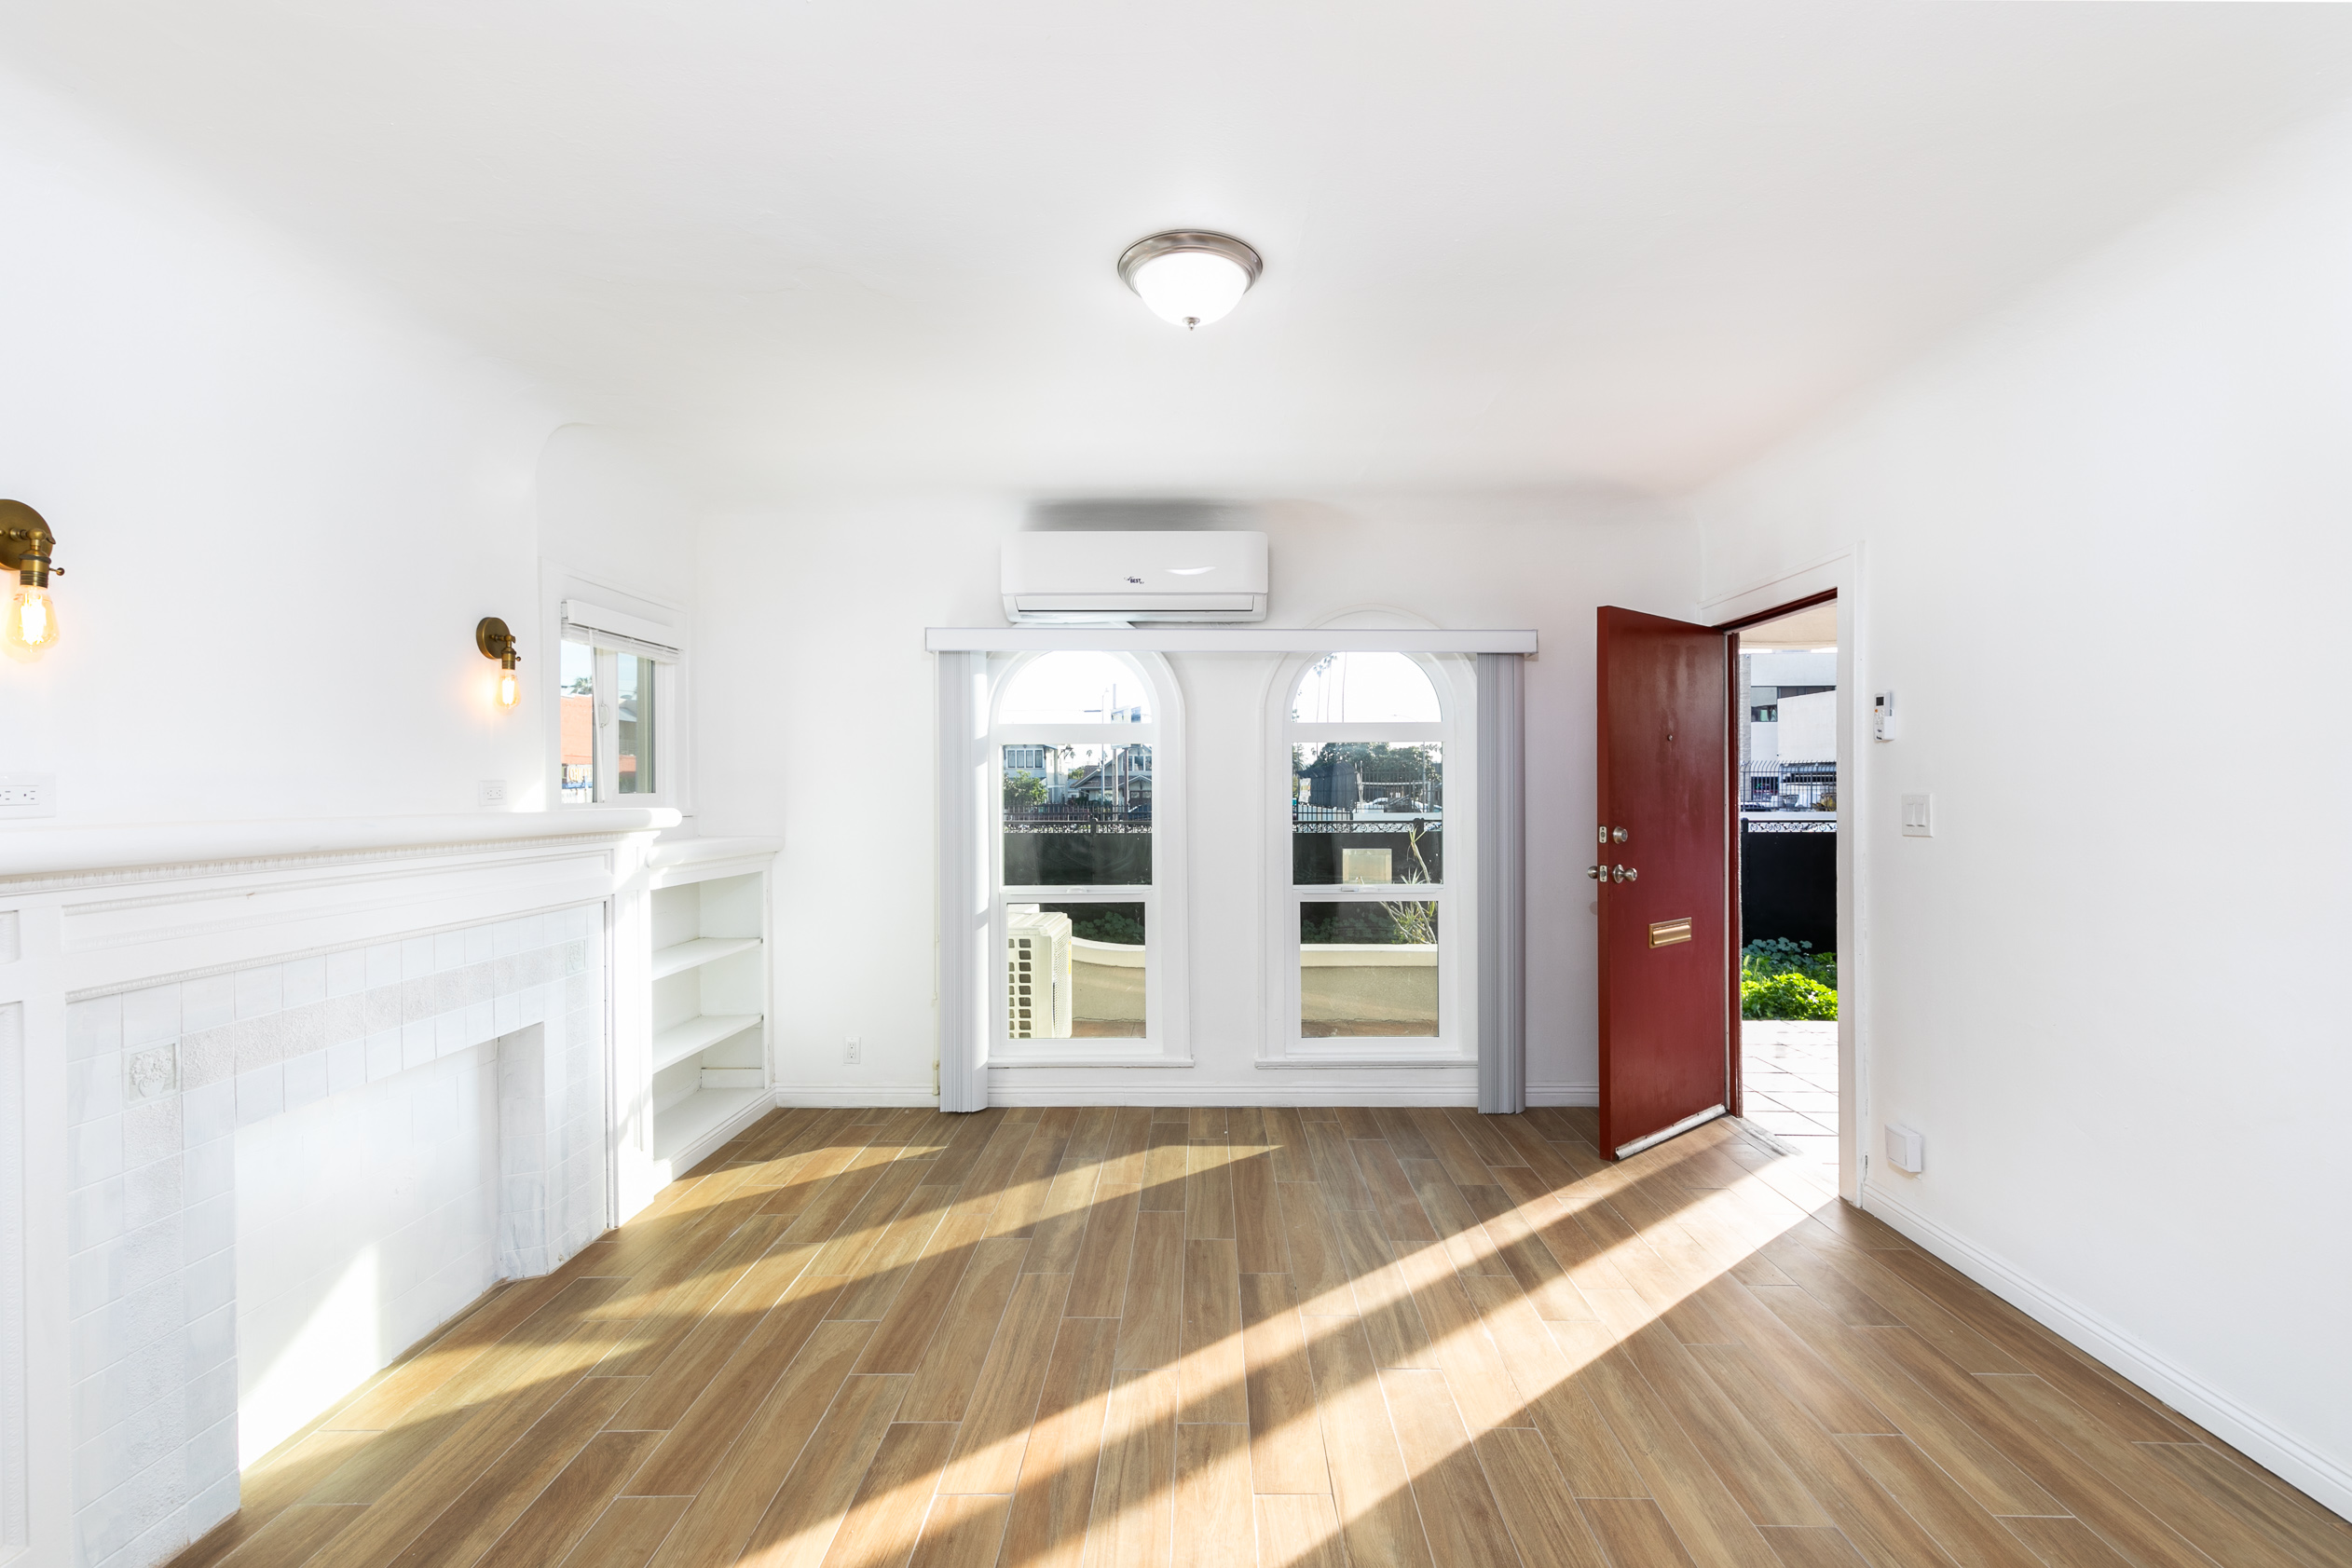 Gut-Renovated 4-Plex 2BR/2BA Unit w/ Dreamy Vintage Accents! MOVE-IN CONCESSION OFFERED!